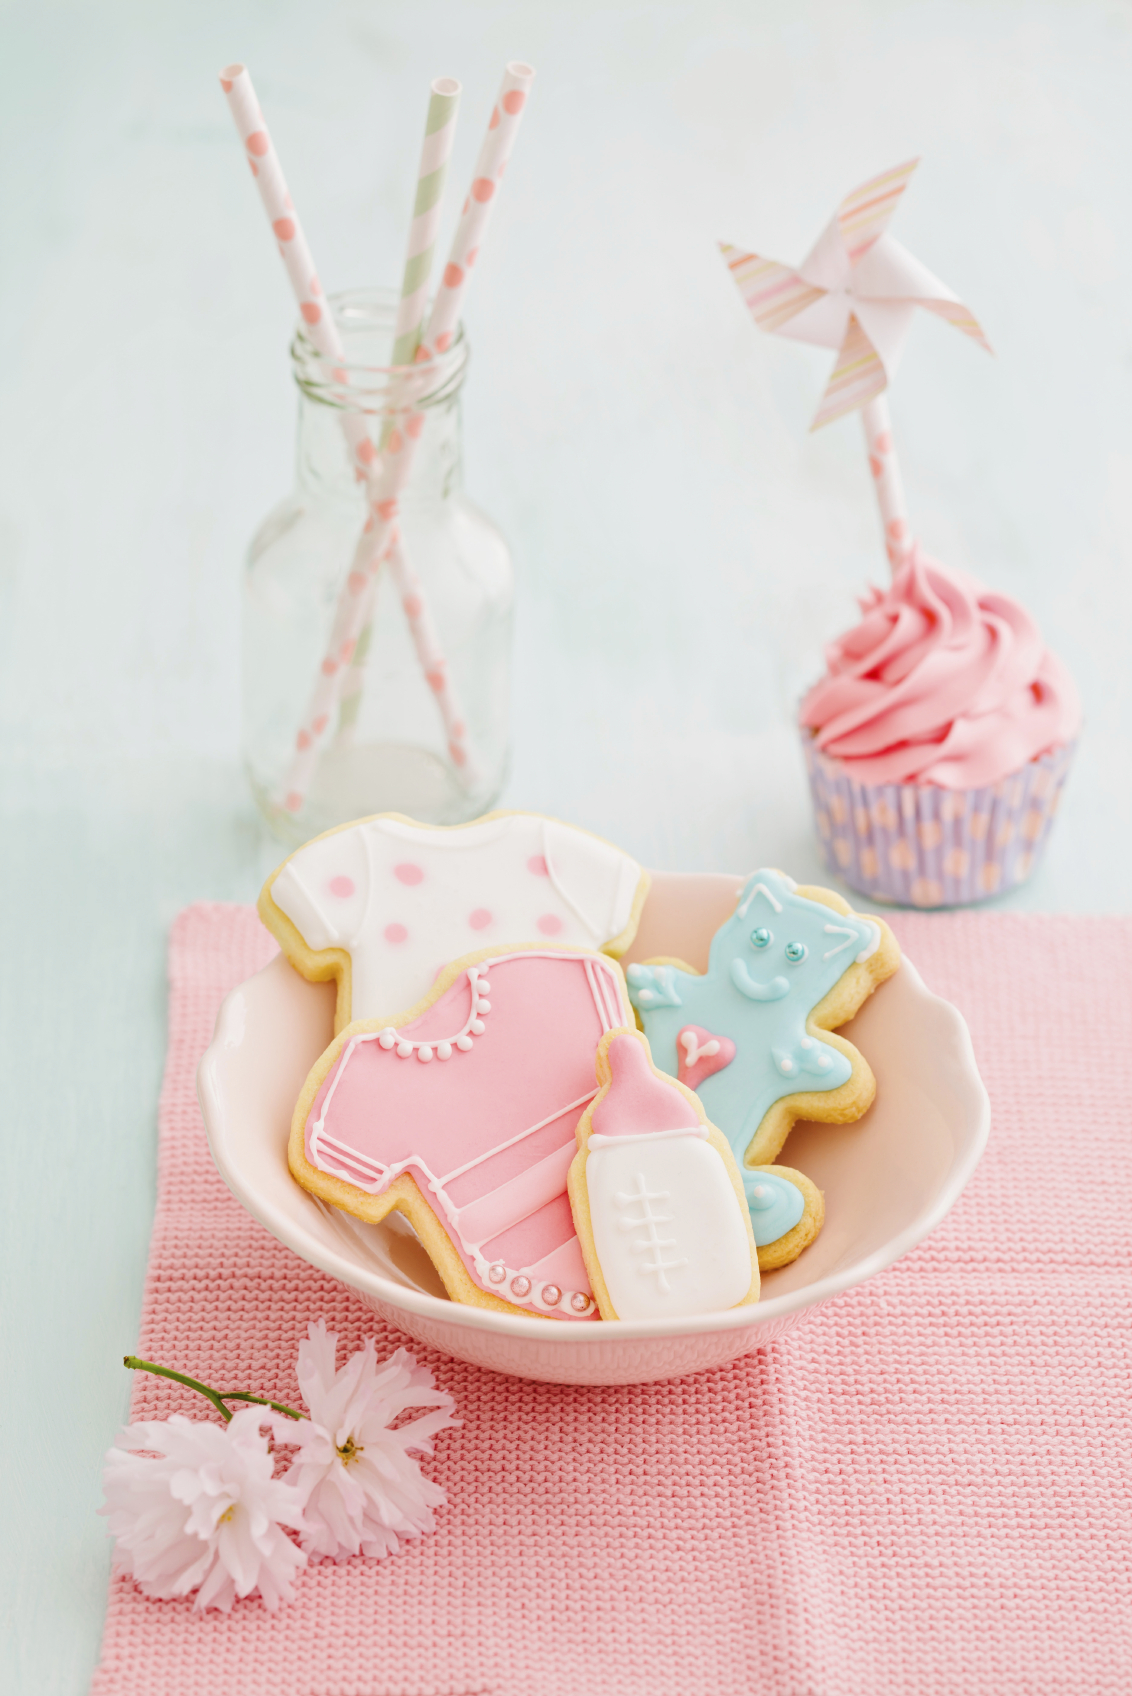 Baby Showers - Event Planning - Kristine King Events — Kristine King Events